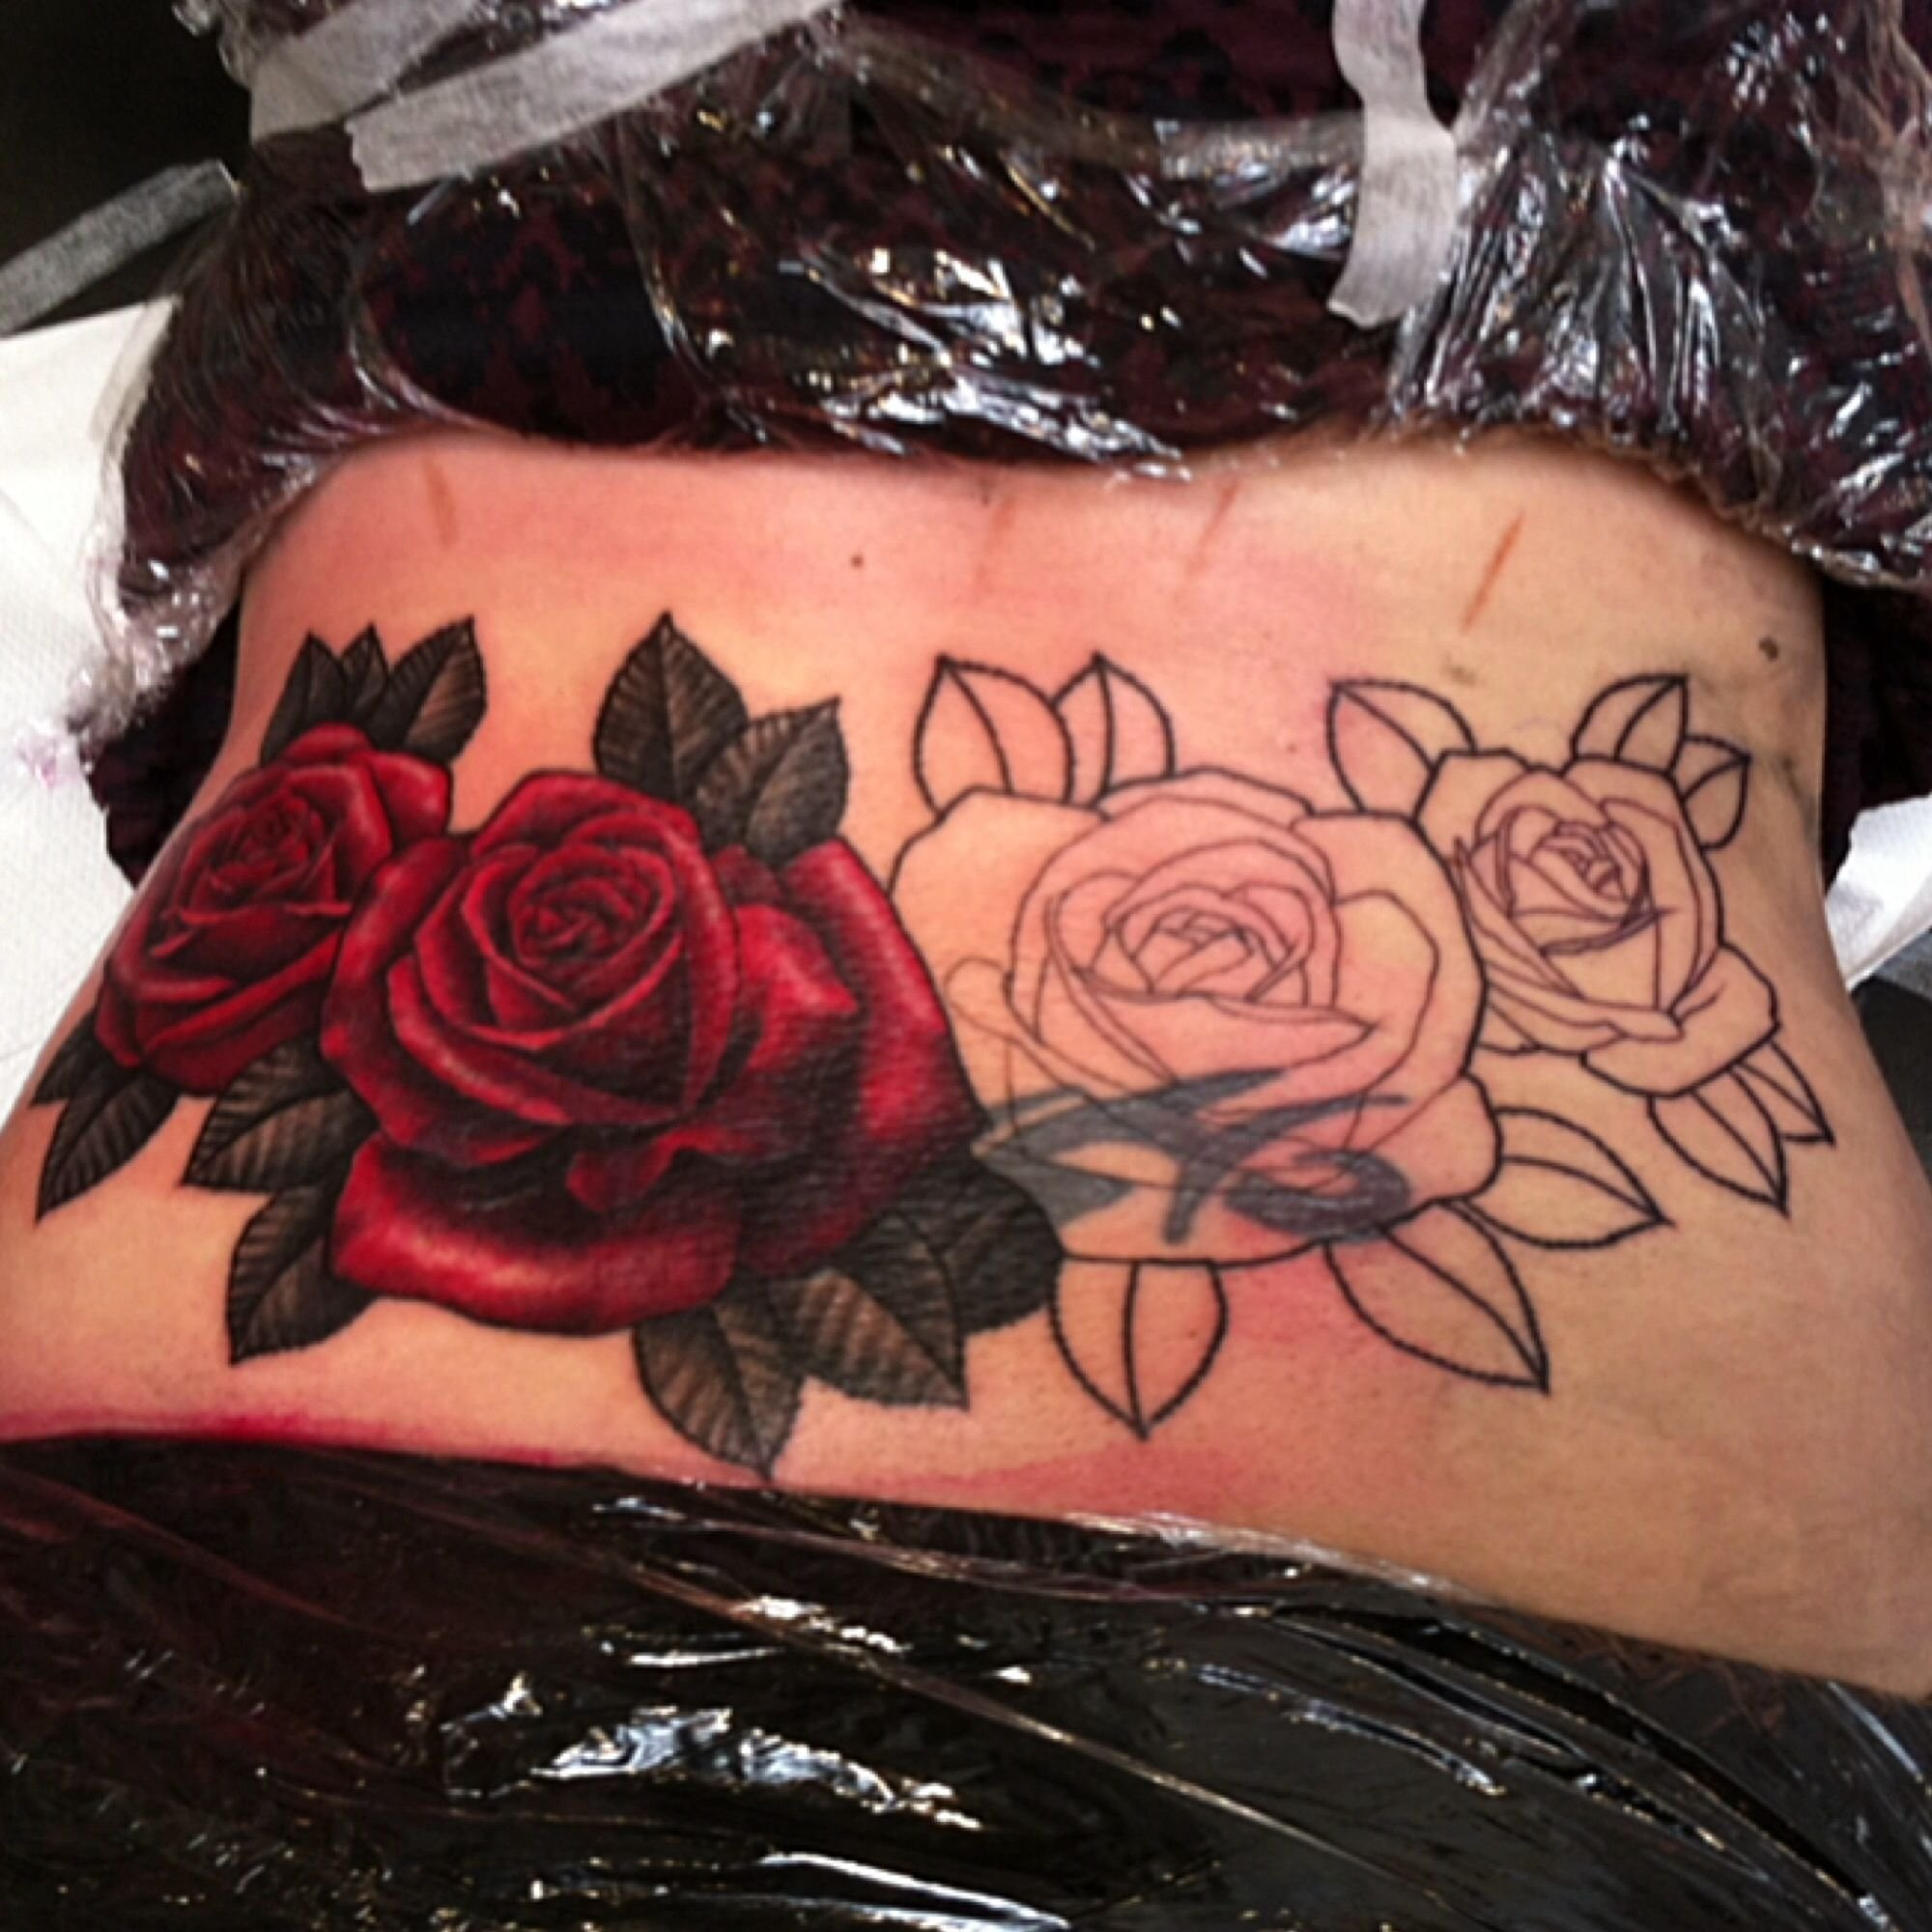 10 Elegant Tramp Stamp Cover Up Ideas i wanna do a cover up of my lower back tattoo so bad id go with 2020